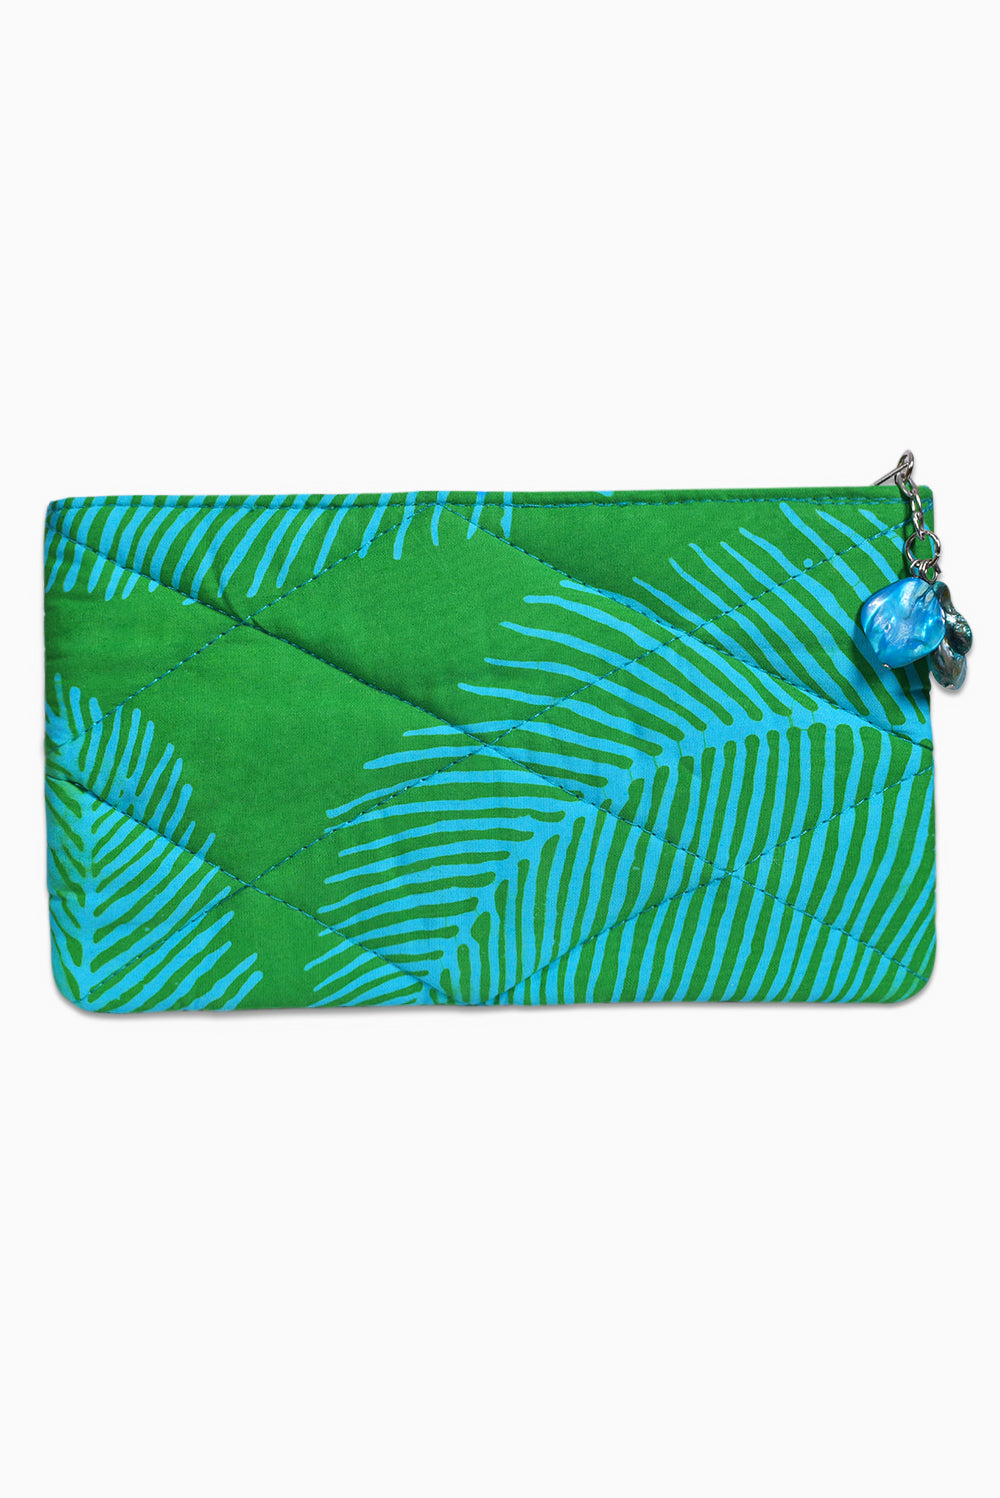 Green & Turquoise (Reef) - Handmade Batik Cosmetic Purse - Palm Design